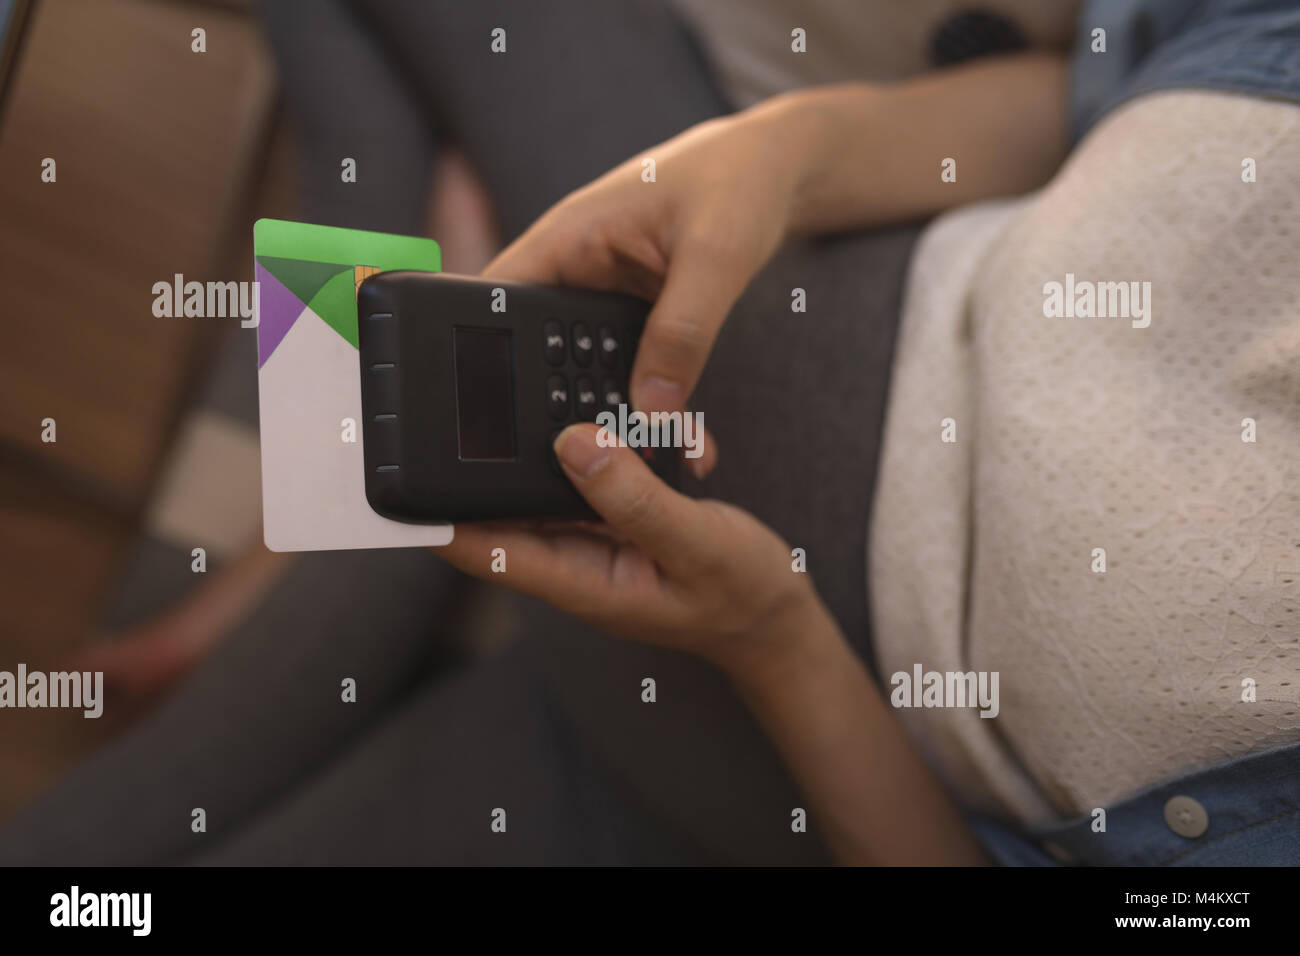 Pregnant woman making payment though bio metric system - Stock Image